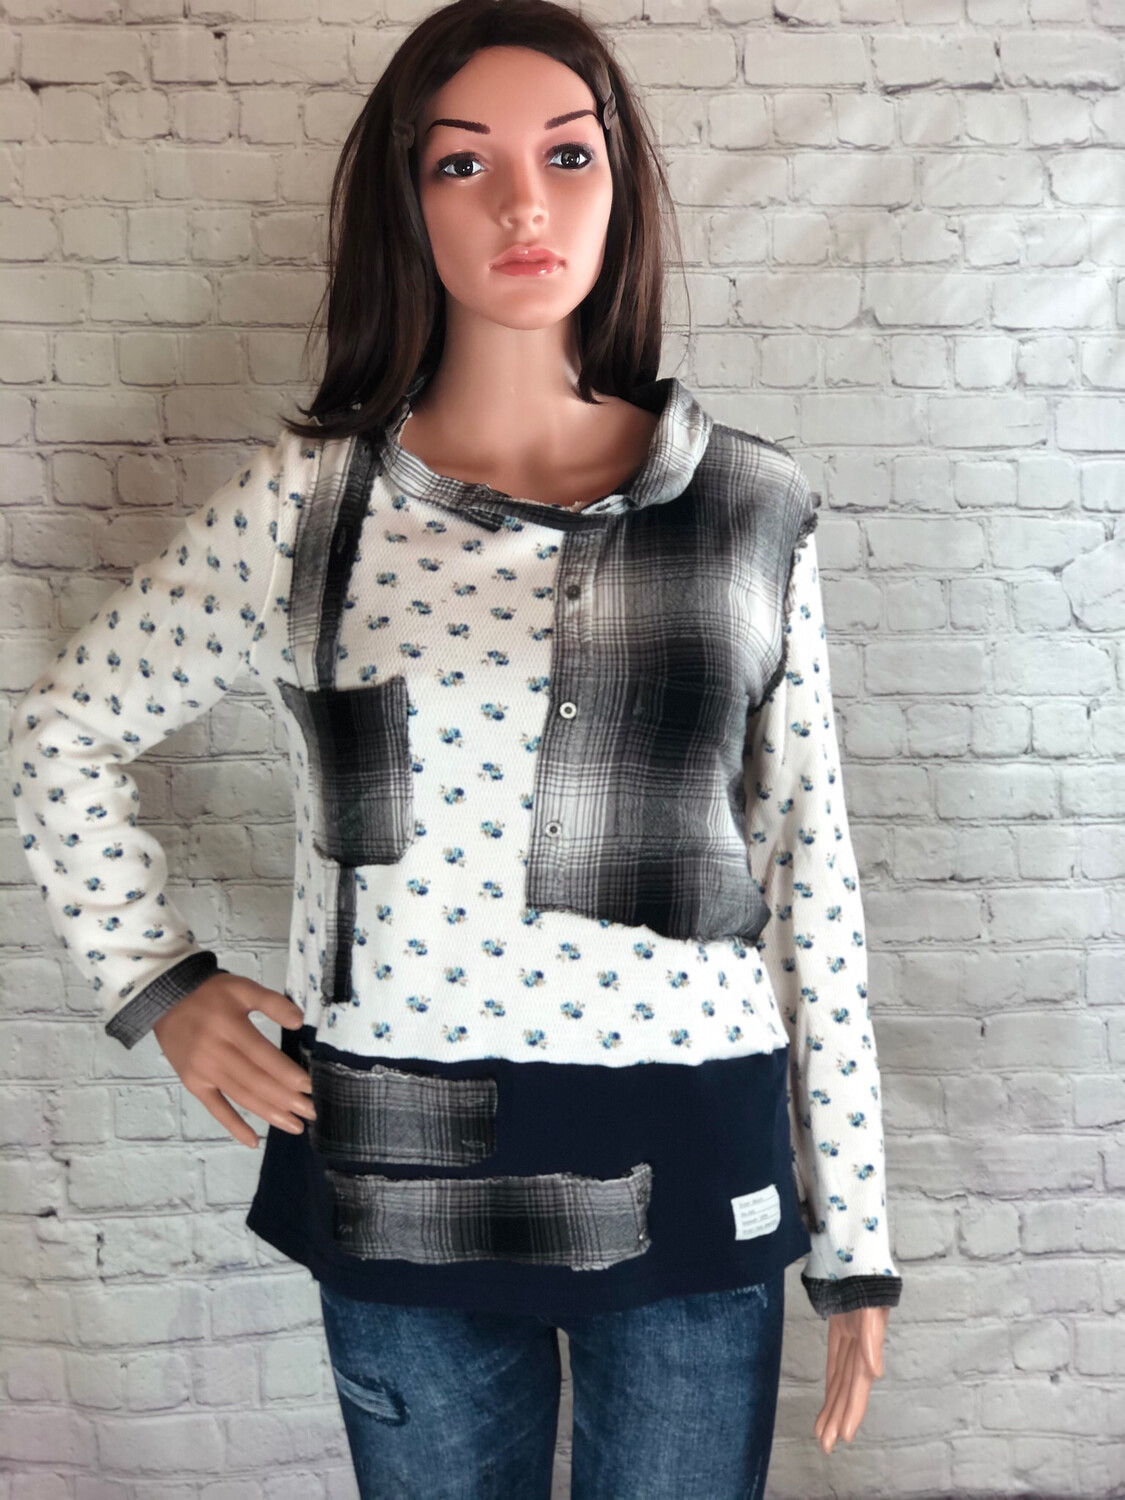 S Threads Upcycled Top Thermal Flannel Eco Friendly OOAK Streetwear Wearable Art Size L